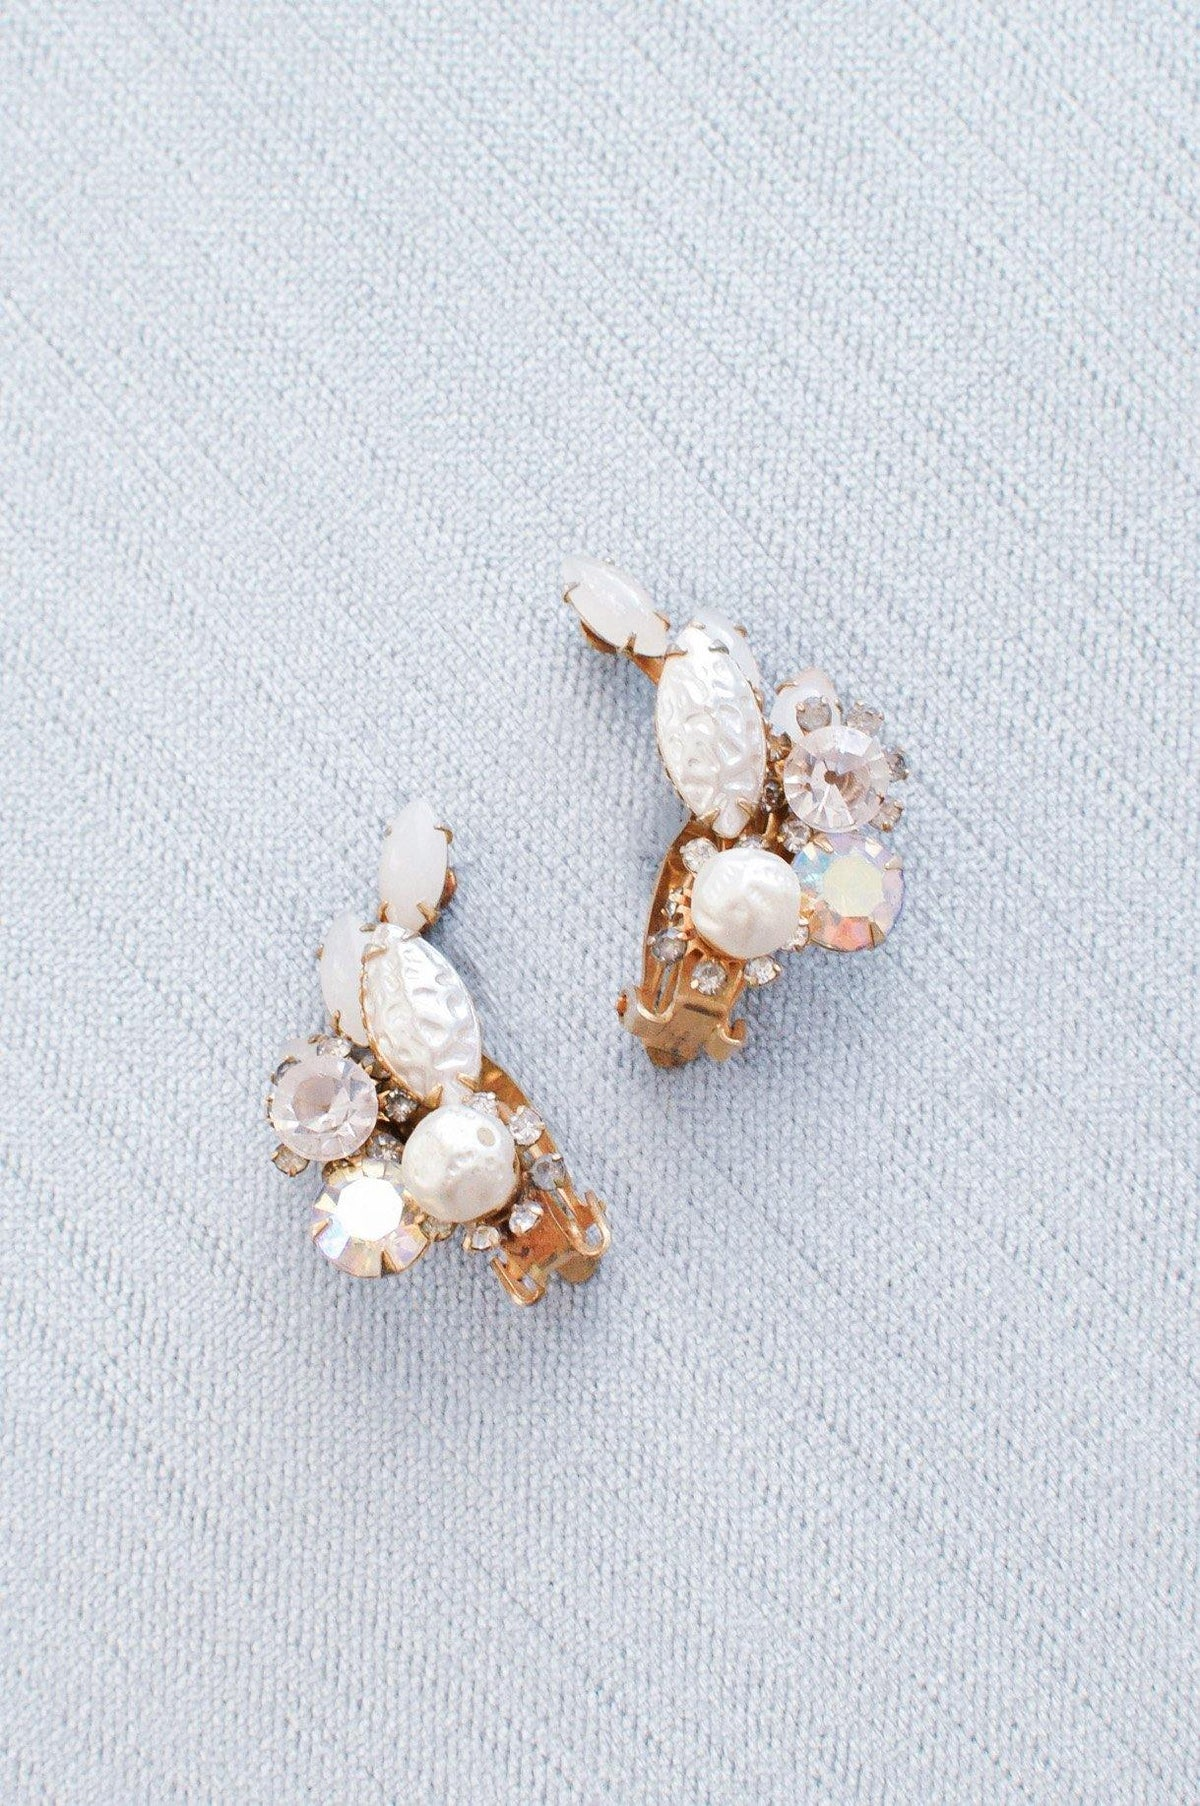 Vintage pearl and rhinestone crawler earrings from Sweet & Spark Wedding Collection.